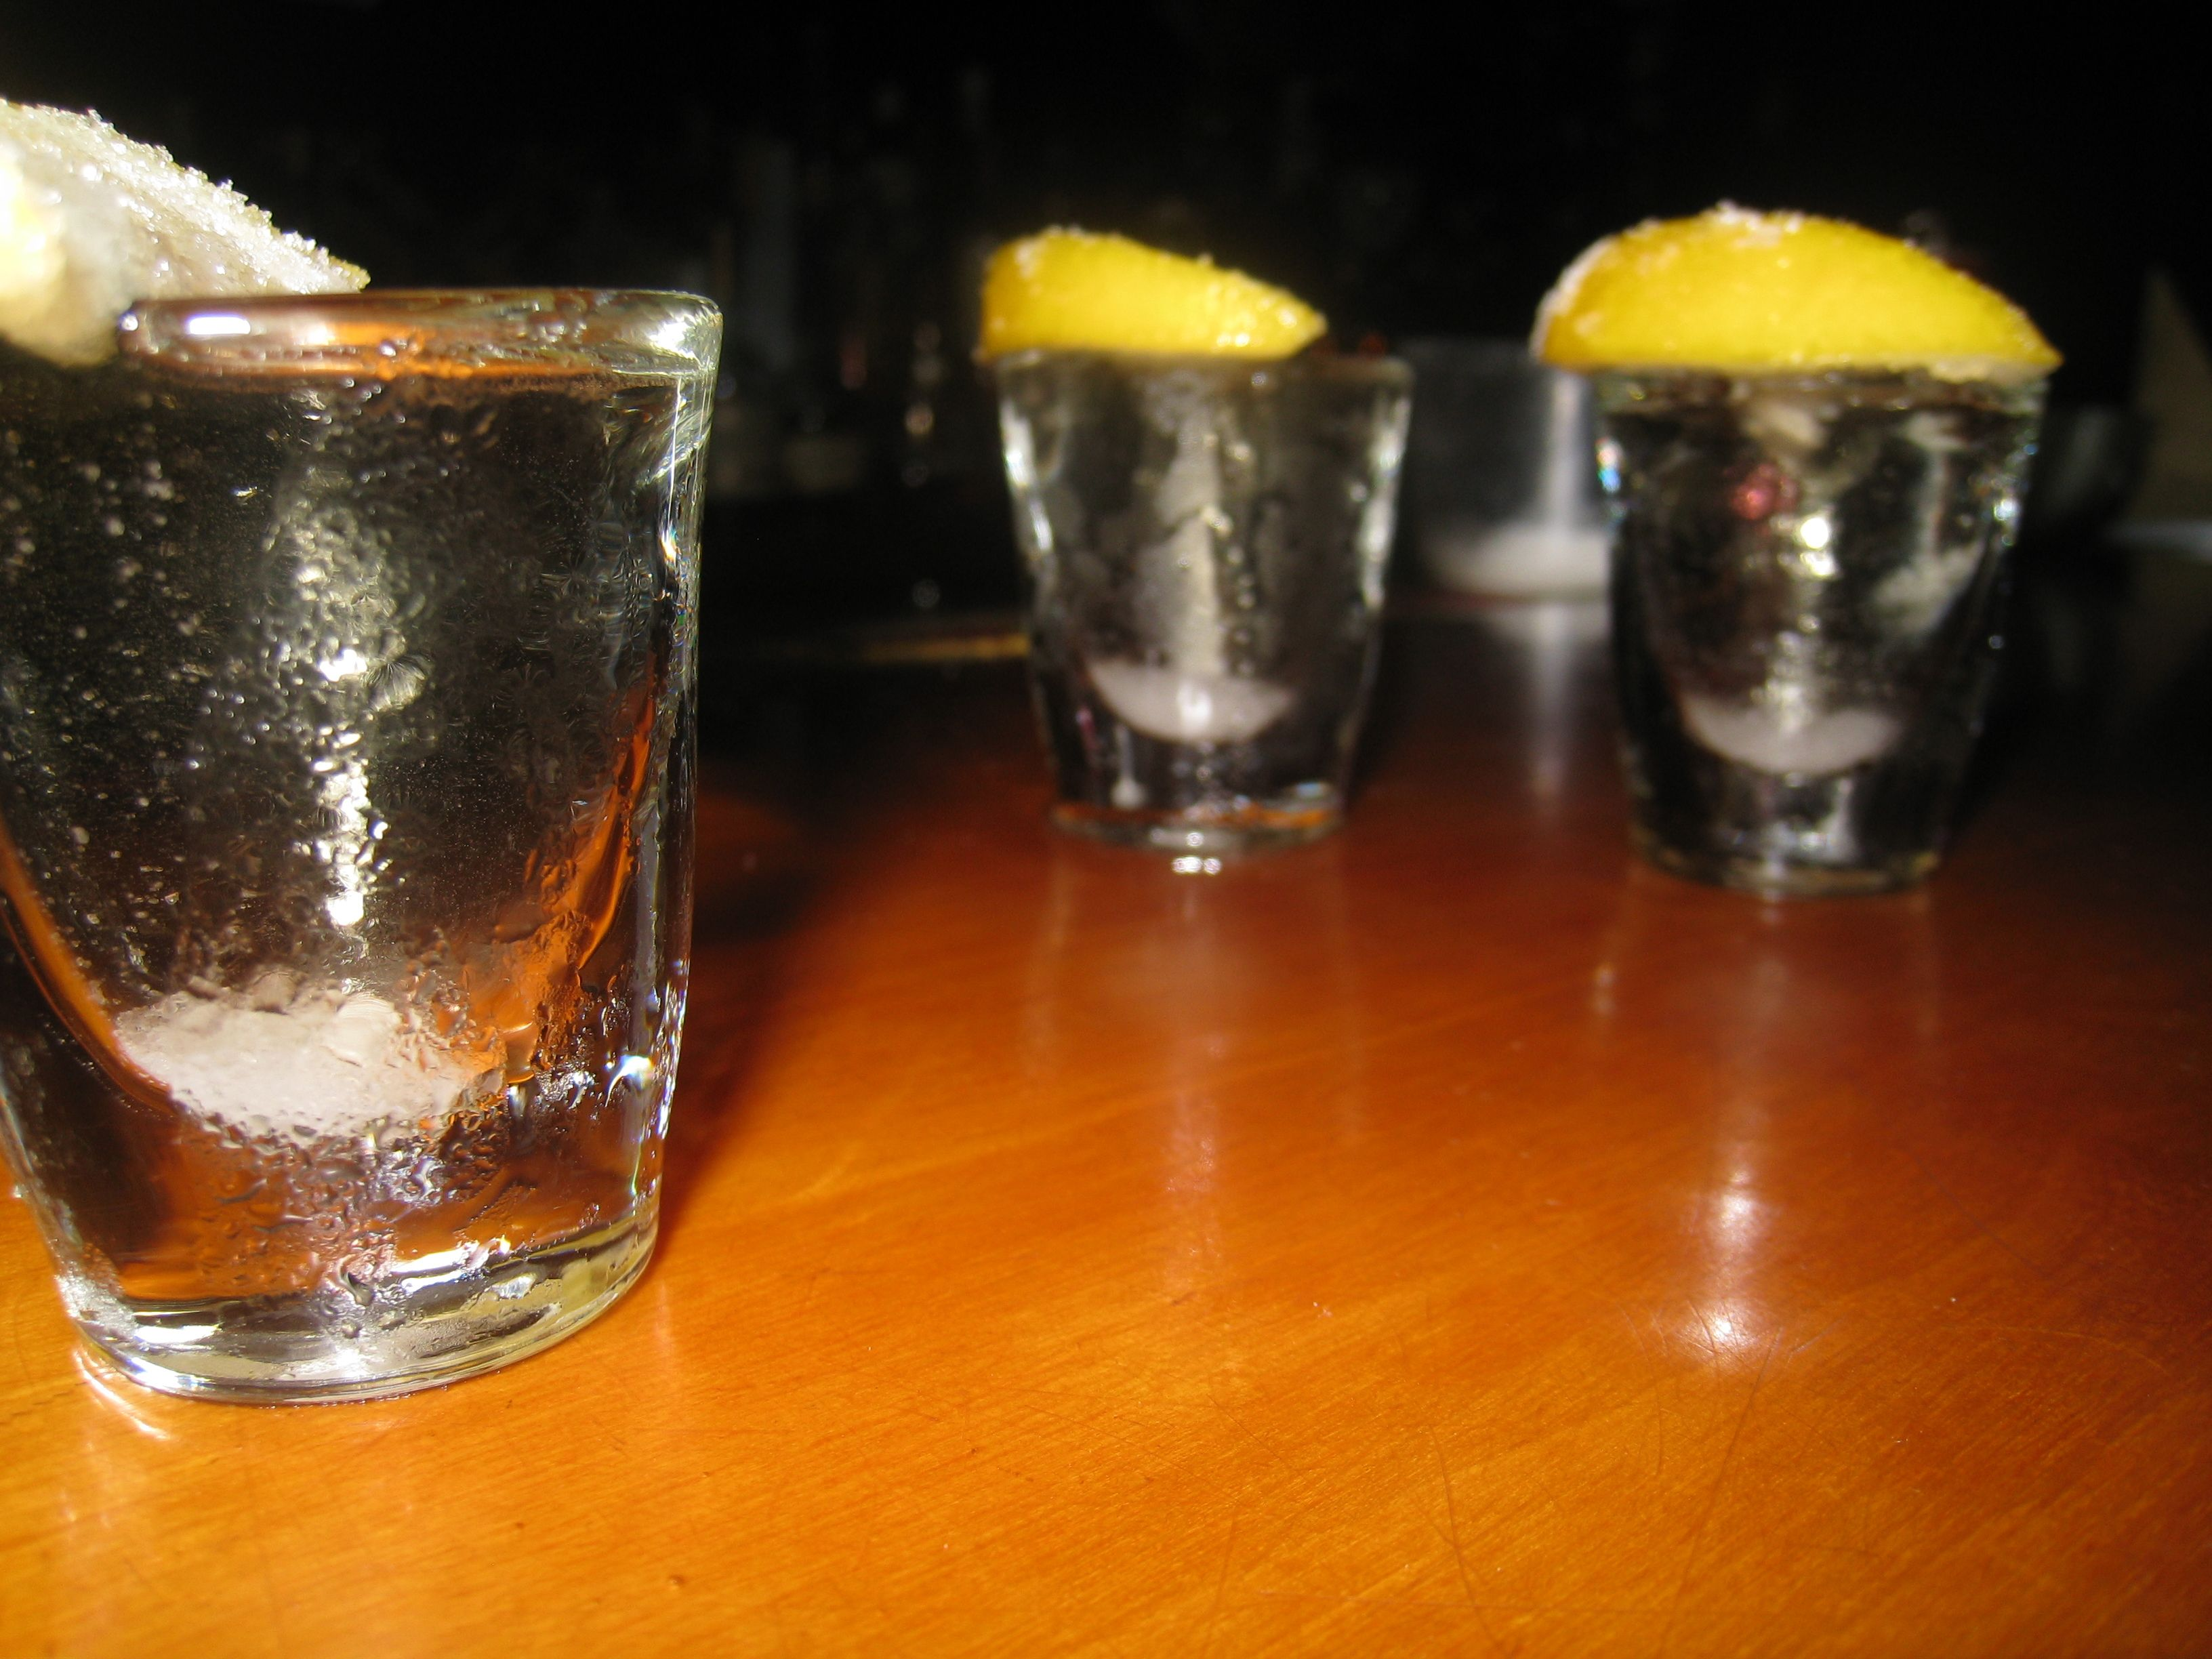 Chocolate Cake Shooters equal parts Citrine vodka and Frangelico